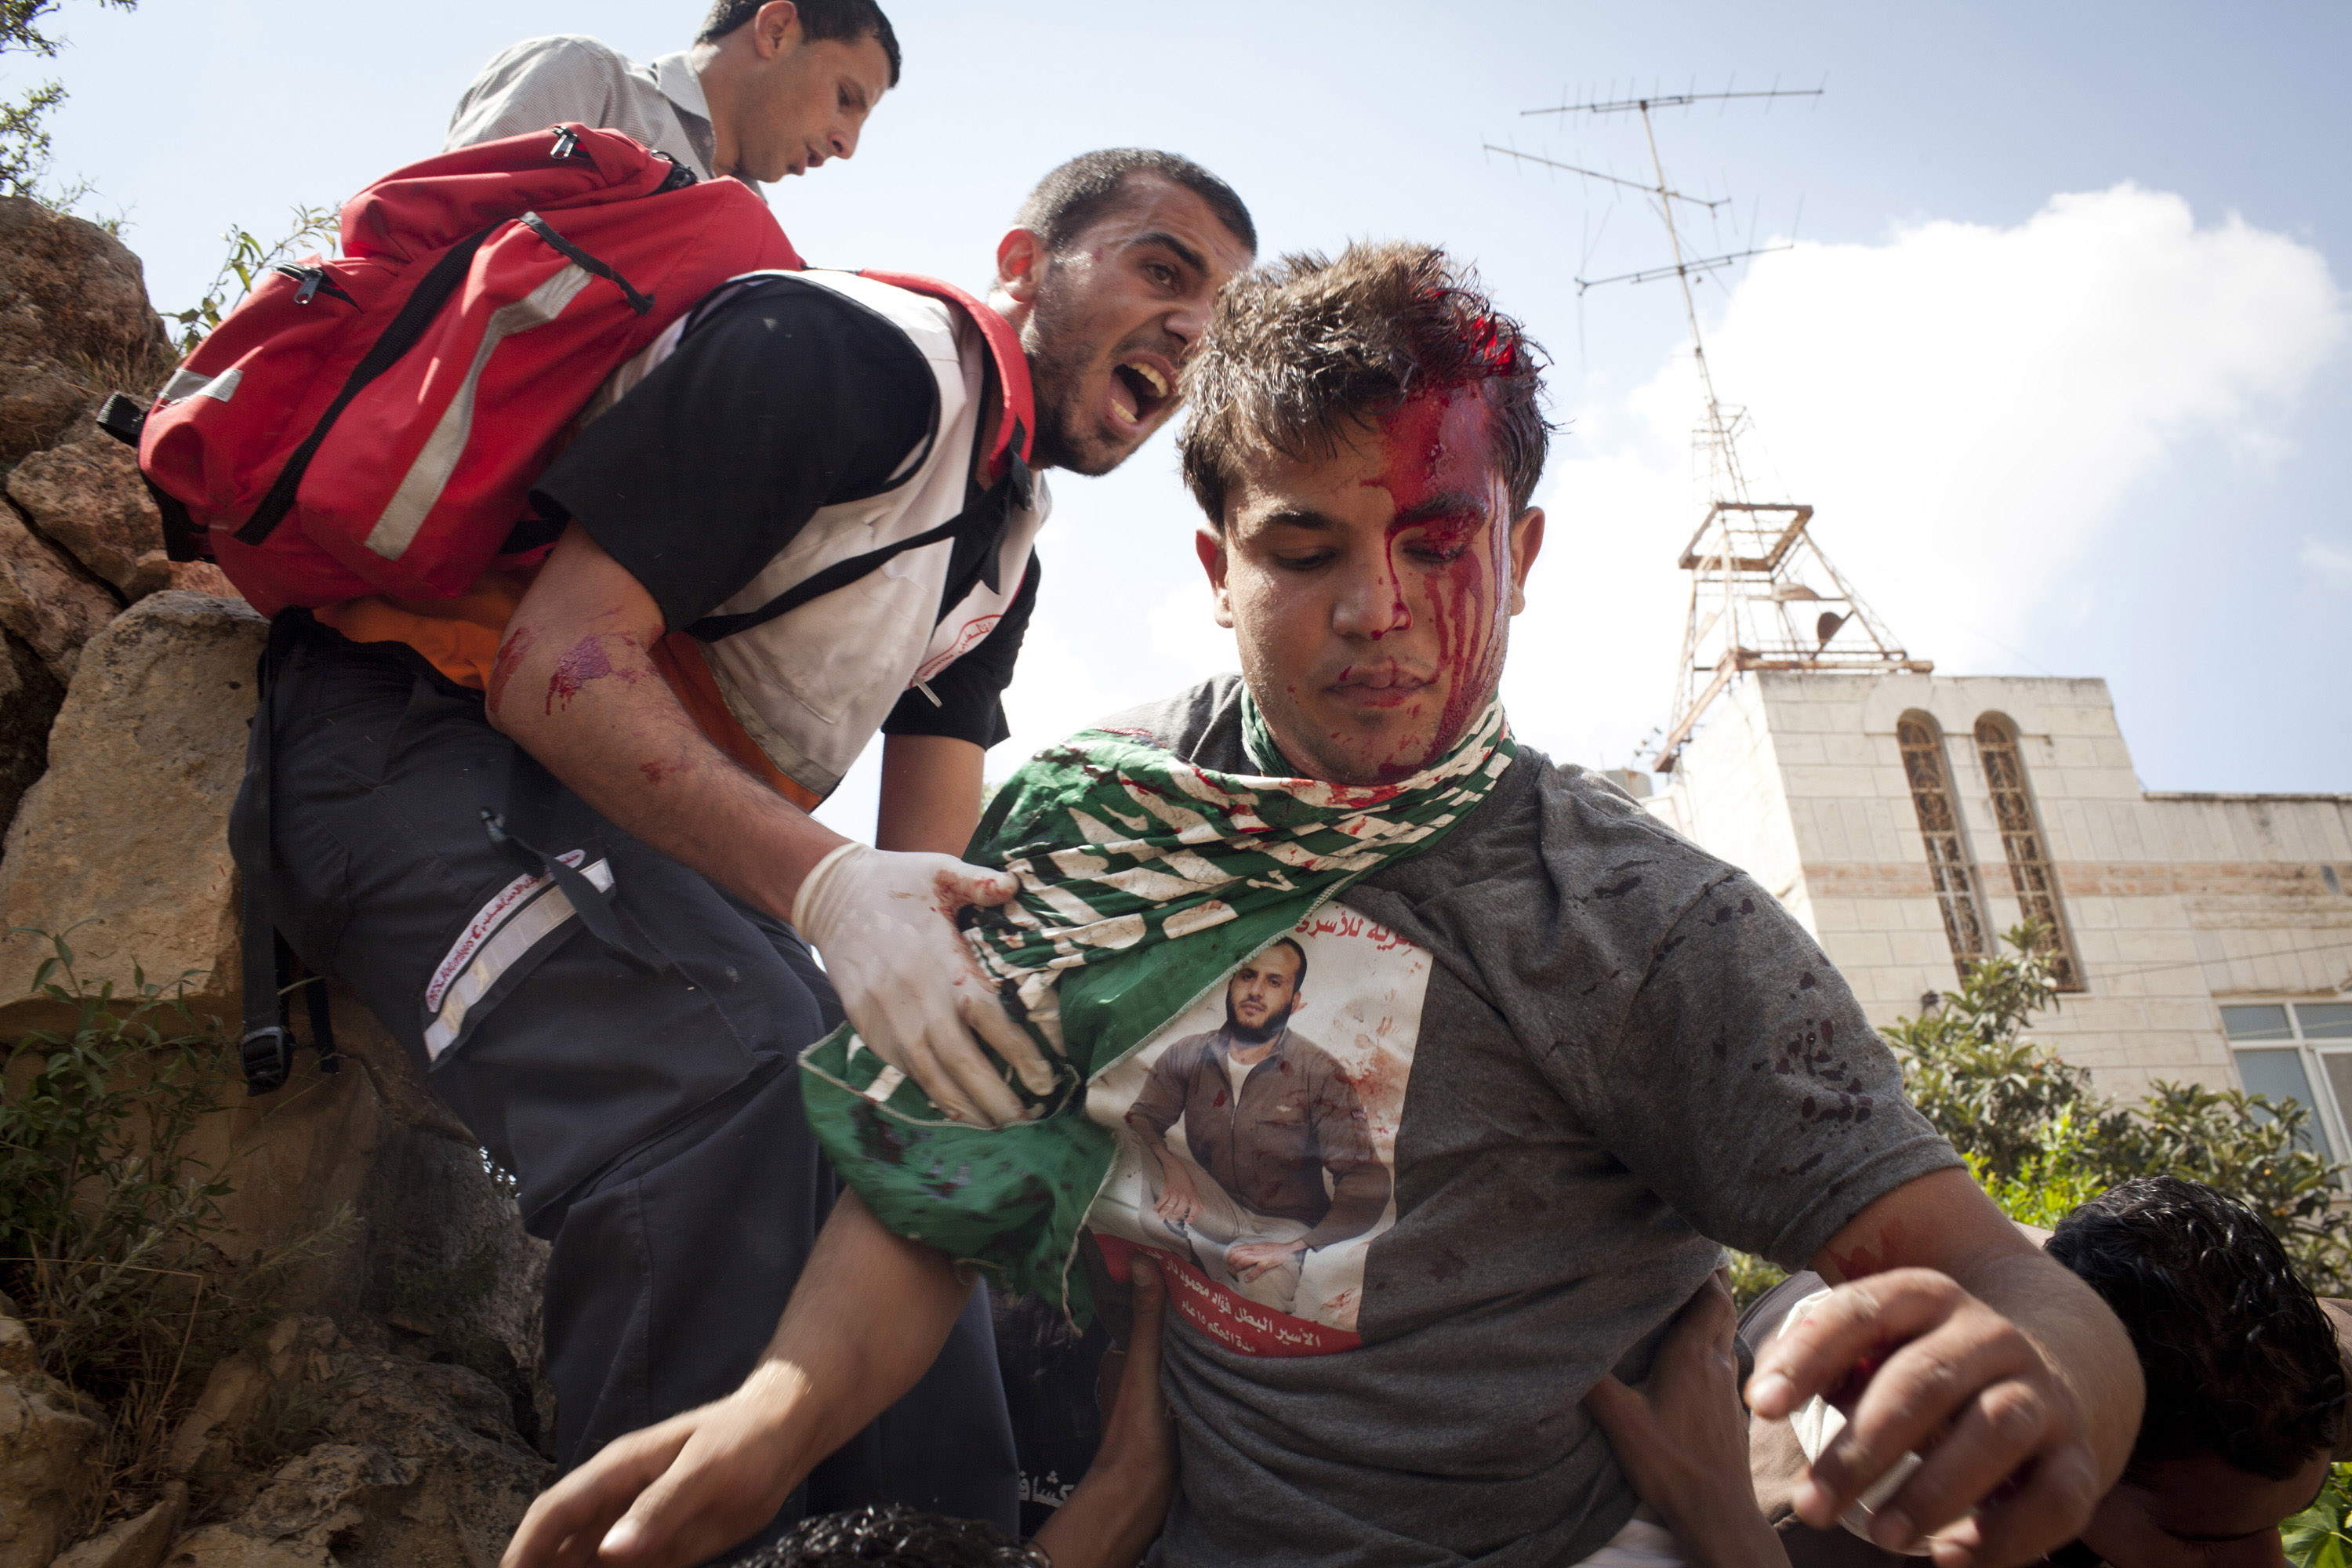 A Palestinian youth bleeds after he was beaten by several Israeli soldiers, injuring him in the head, during clashes following a protest commemorating the Nakba, outside Ofer military prison, near the West Bank city of Ramallah, May 15, 2012. (Photo by Oren Ziv/GroundTruth)